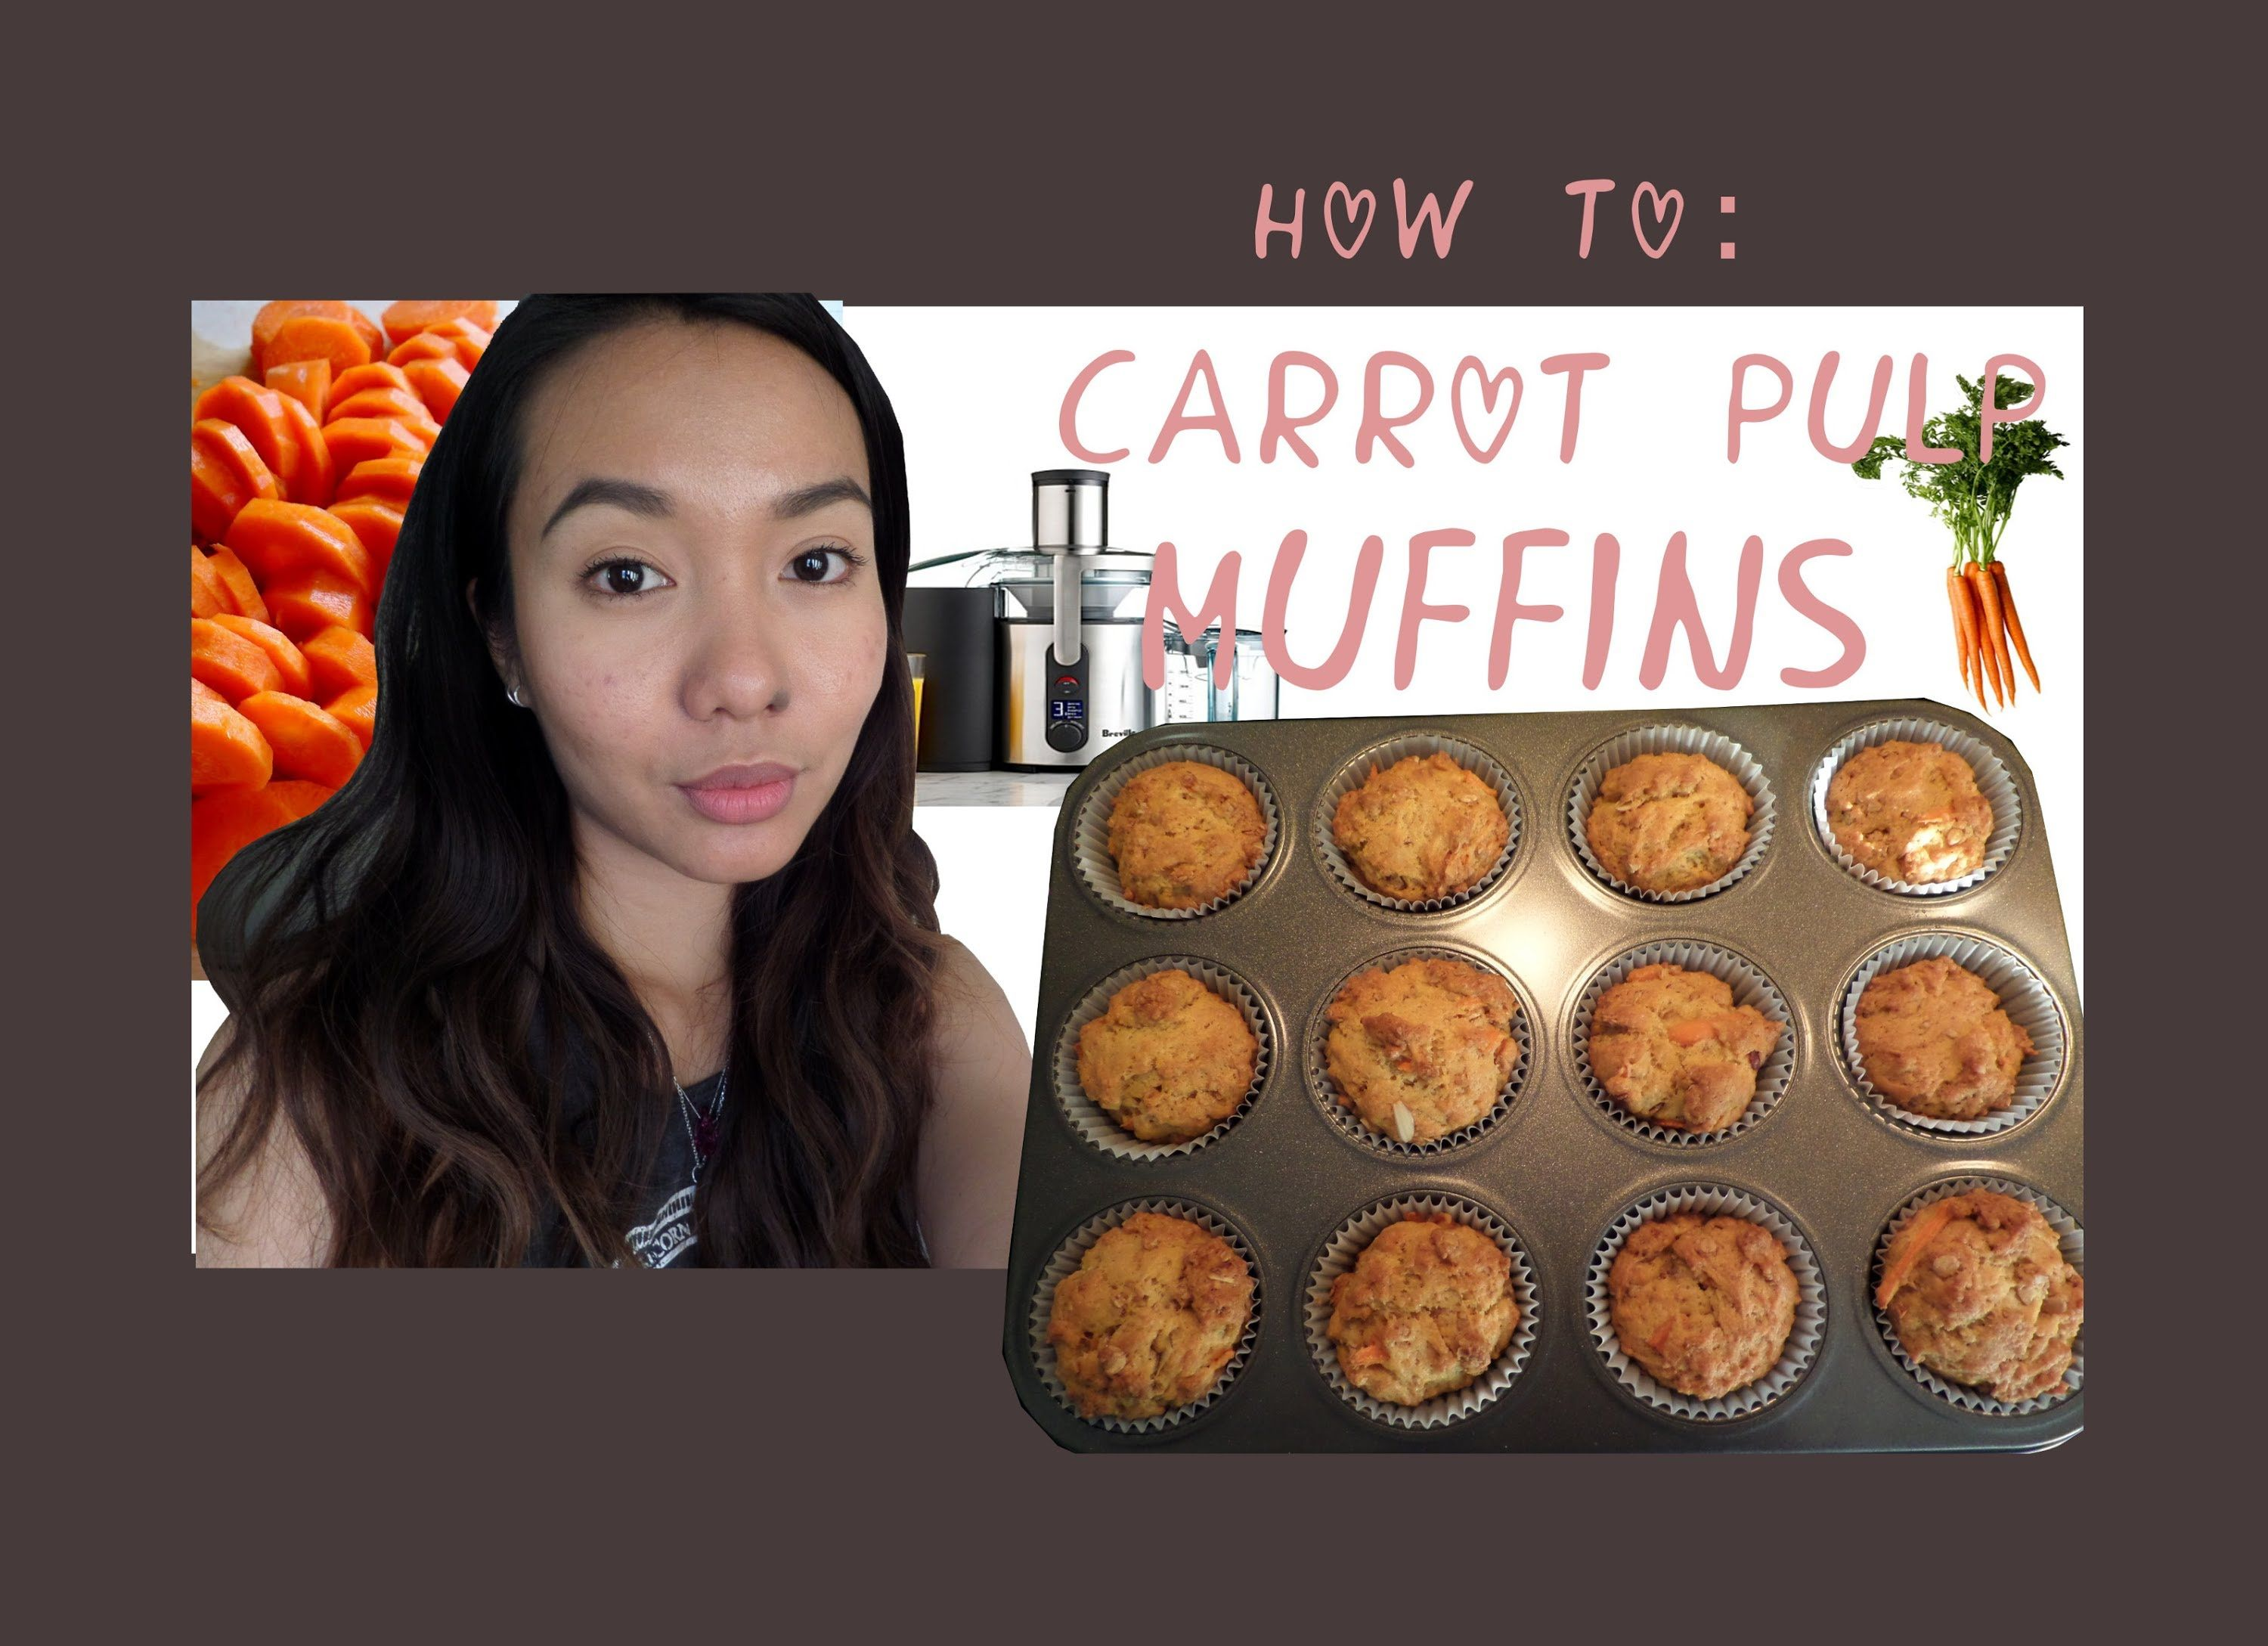 How to bake carrot muffins from carrot juice pulp baked